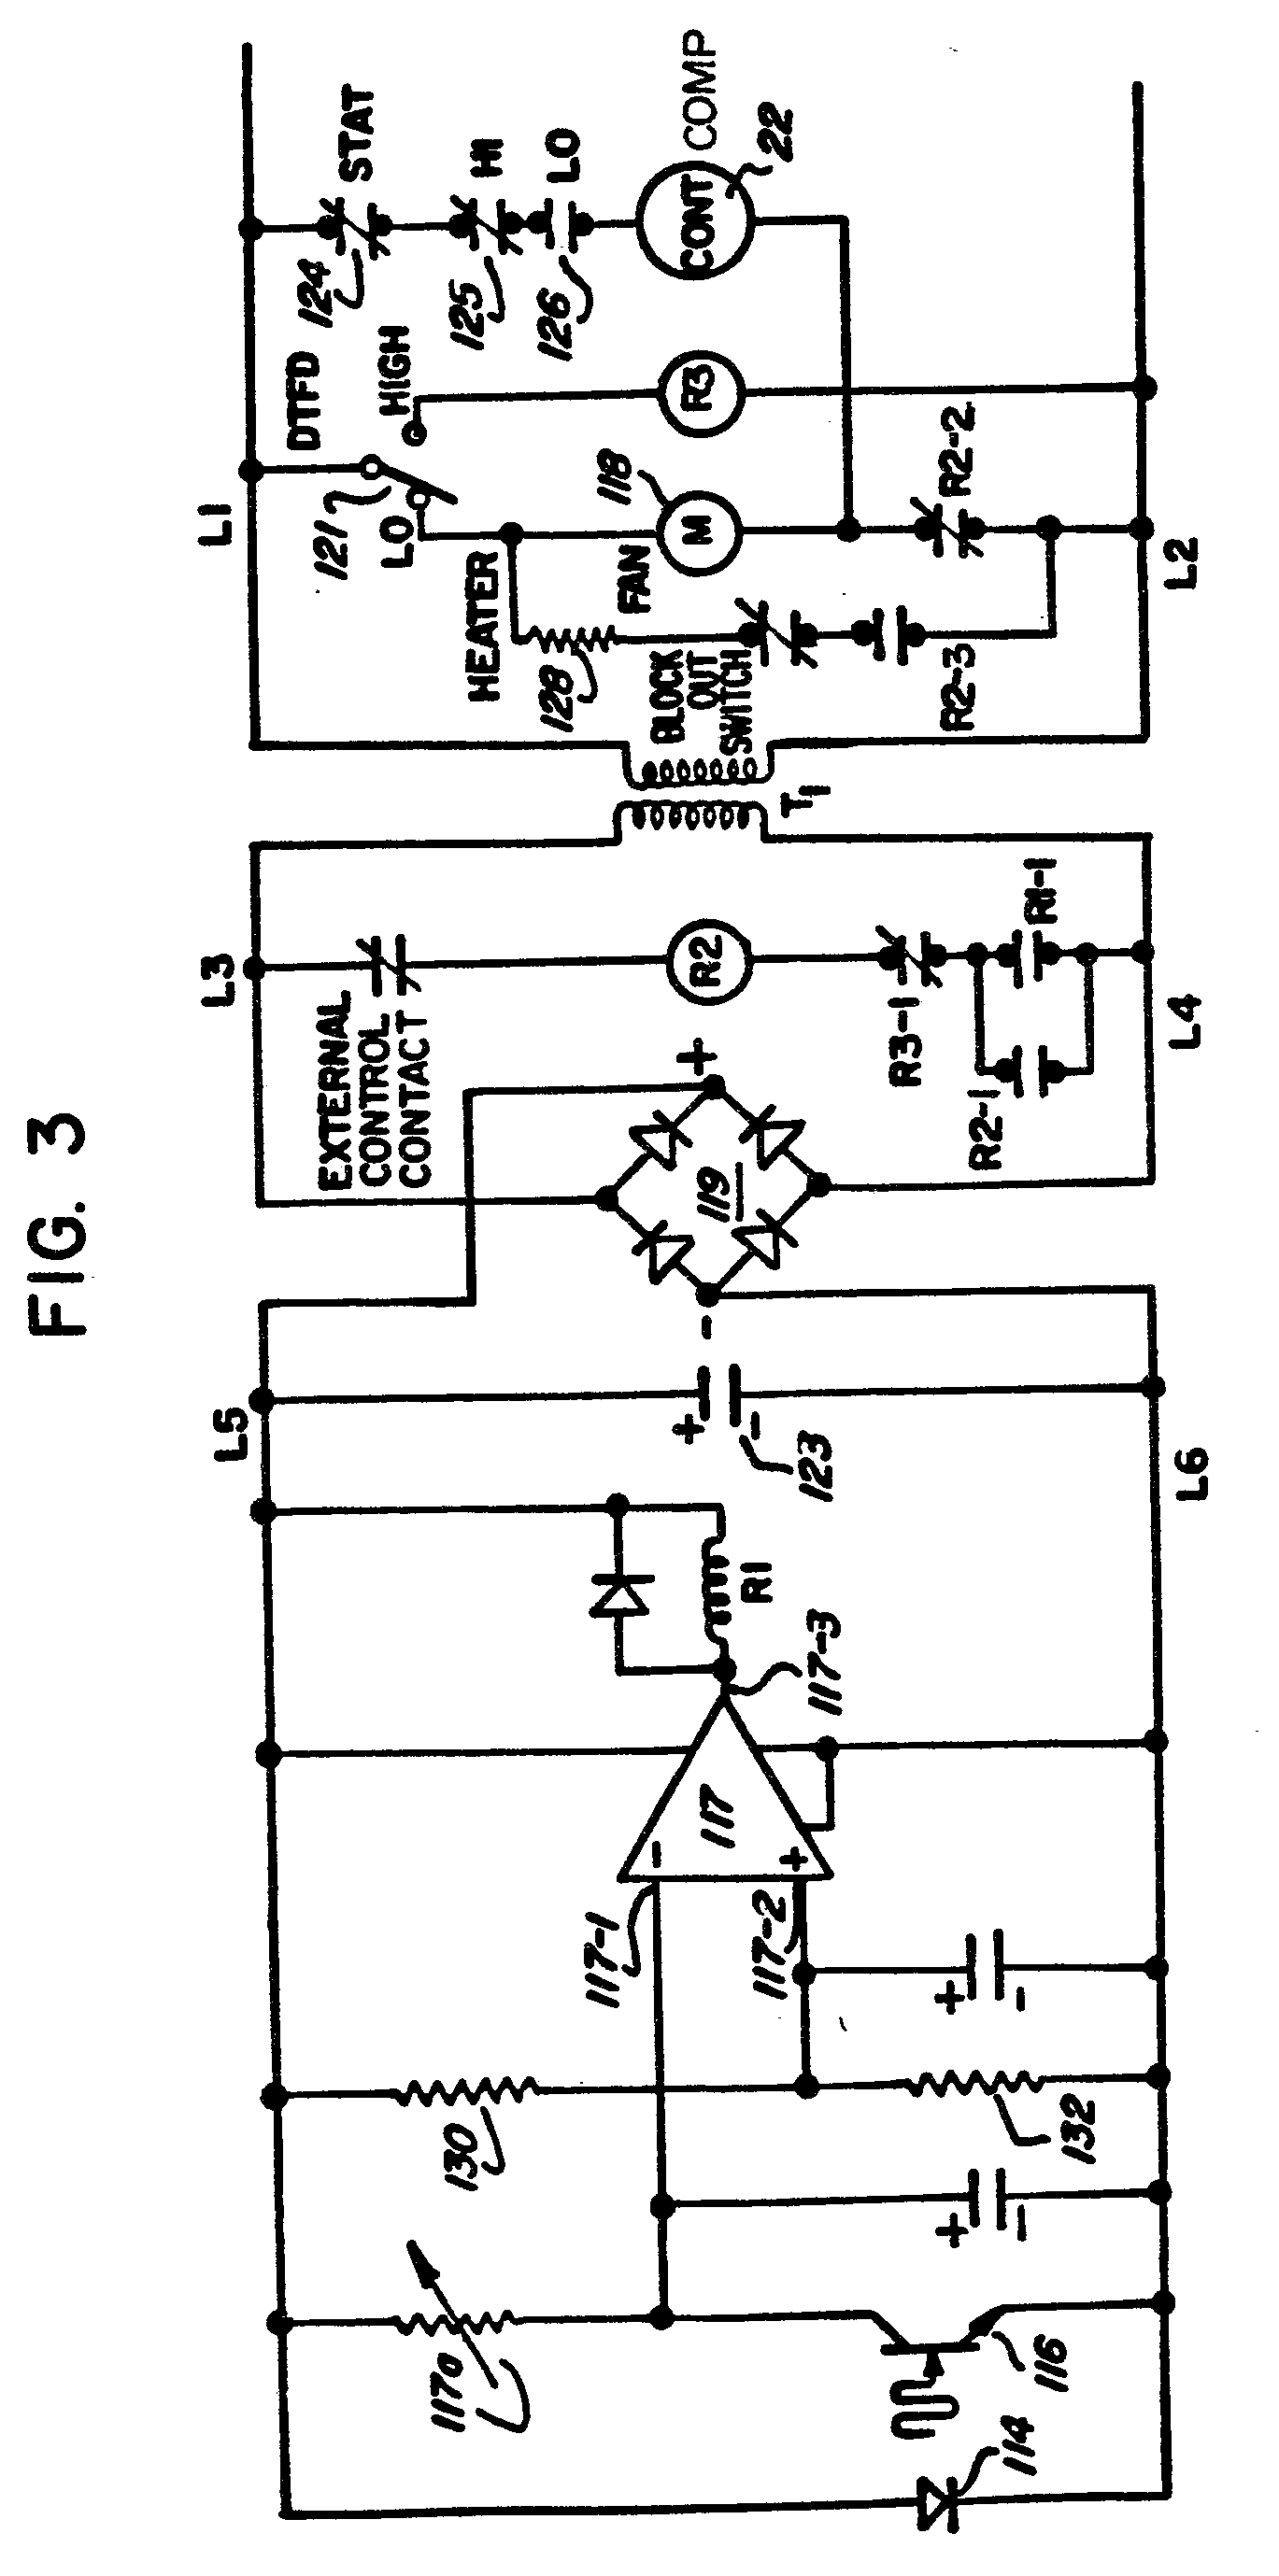 Wiring Diagram Photocell